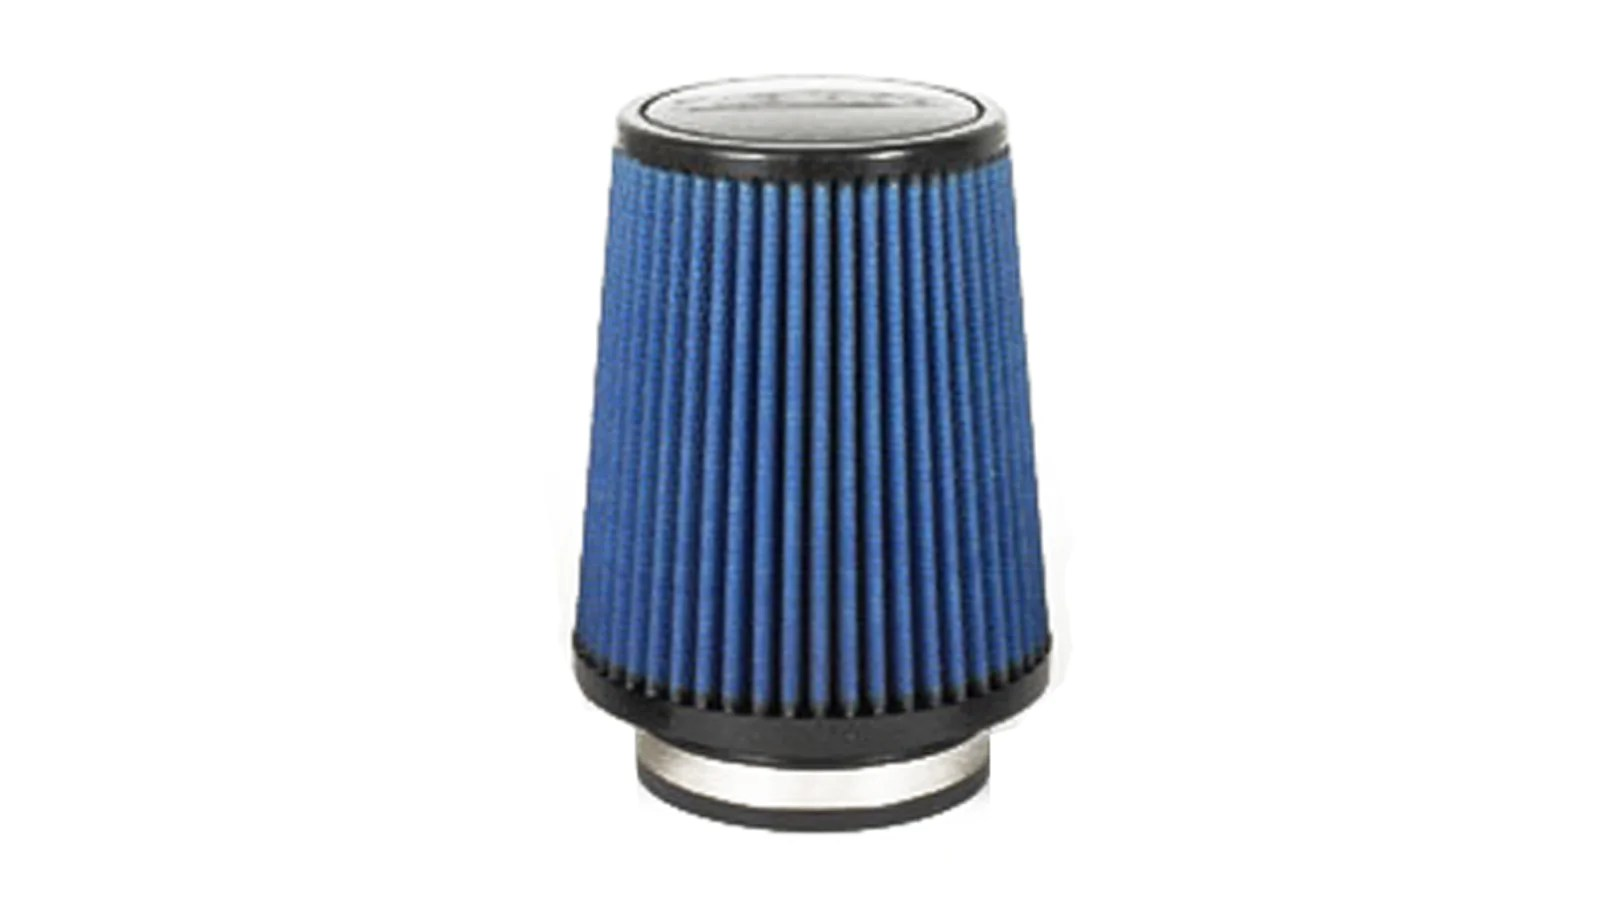 medium resolution of 1999 2000 cadillac escalade oiled filter 5111